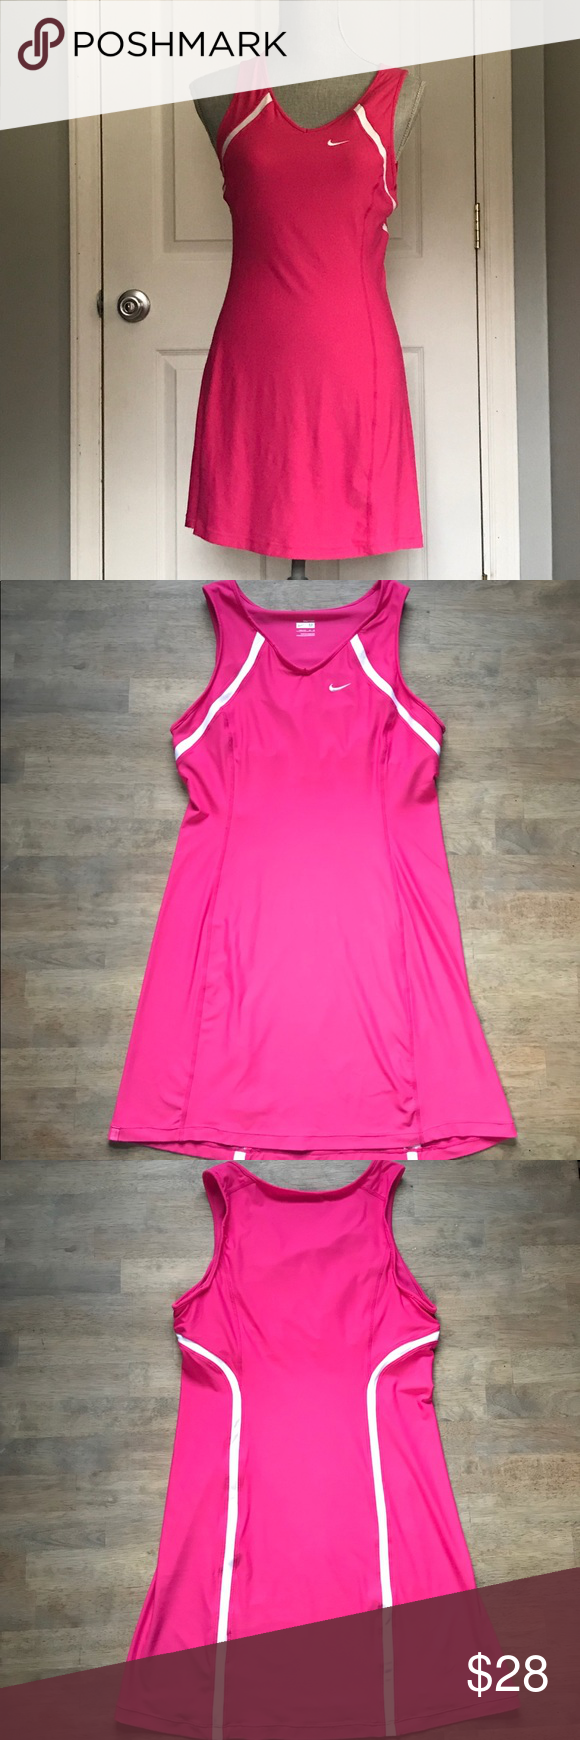 Nike Fit Dry Tennis Dress Pink And White Nike Tennis Dress In Great Condition No Known Stains Or Flaws Dress Has Bui Clothes Design Tennis Dress Nike Dresses